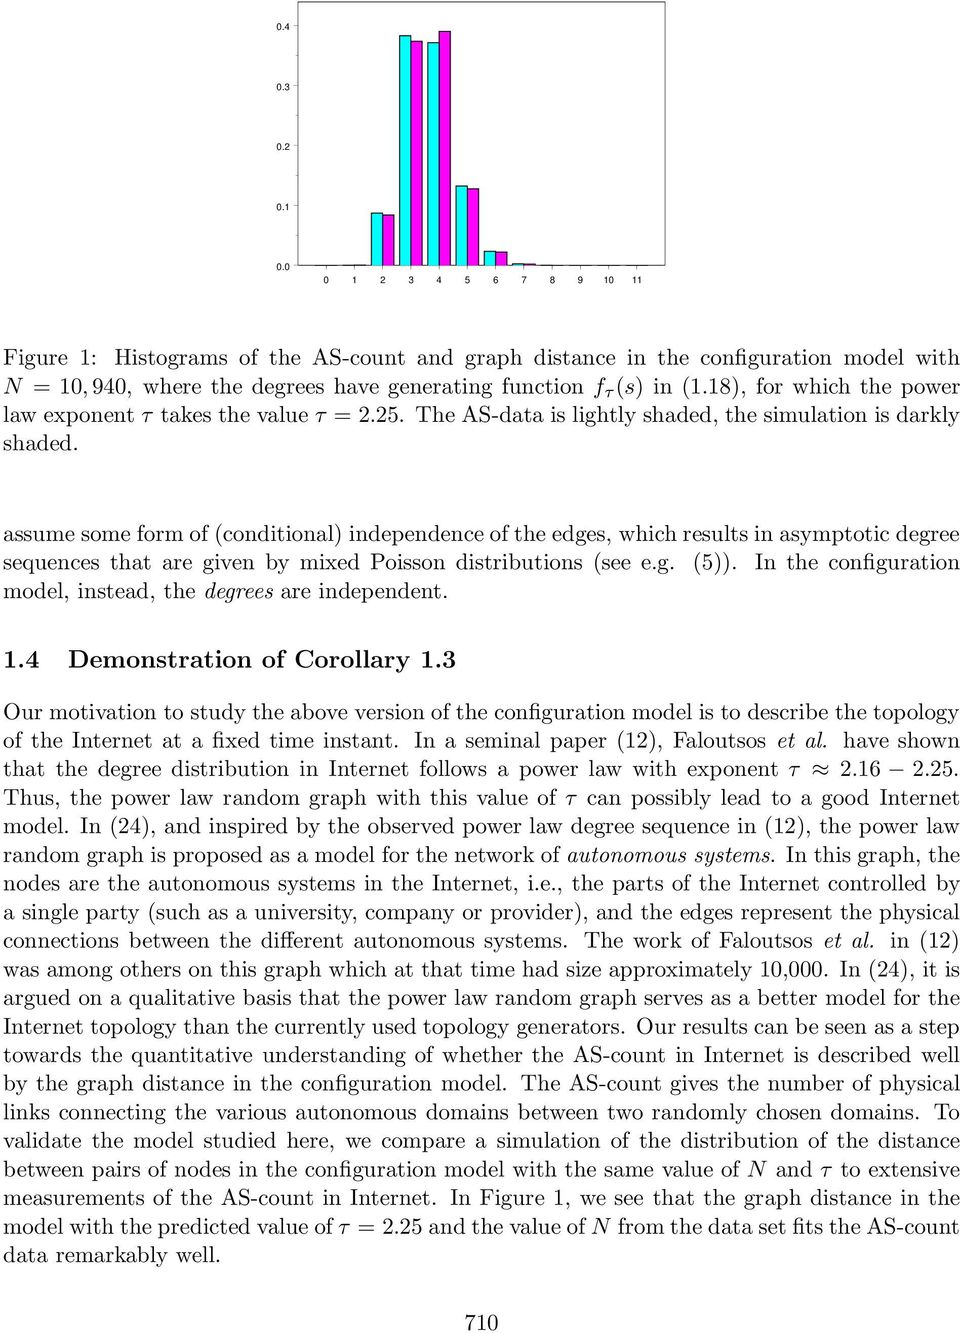 assue soe for of conditiona independence of the edges, which resuts in asyptotic degree sequences that are given by ixed Poisson distributions see e.g. 5.